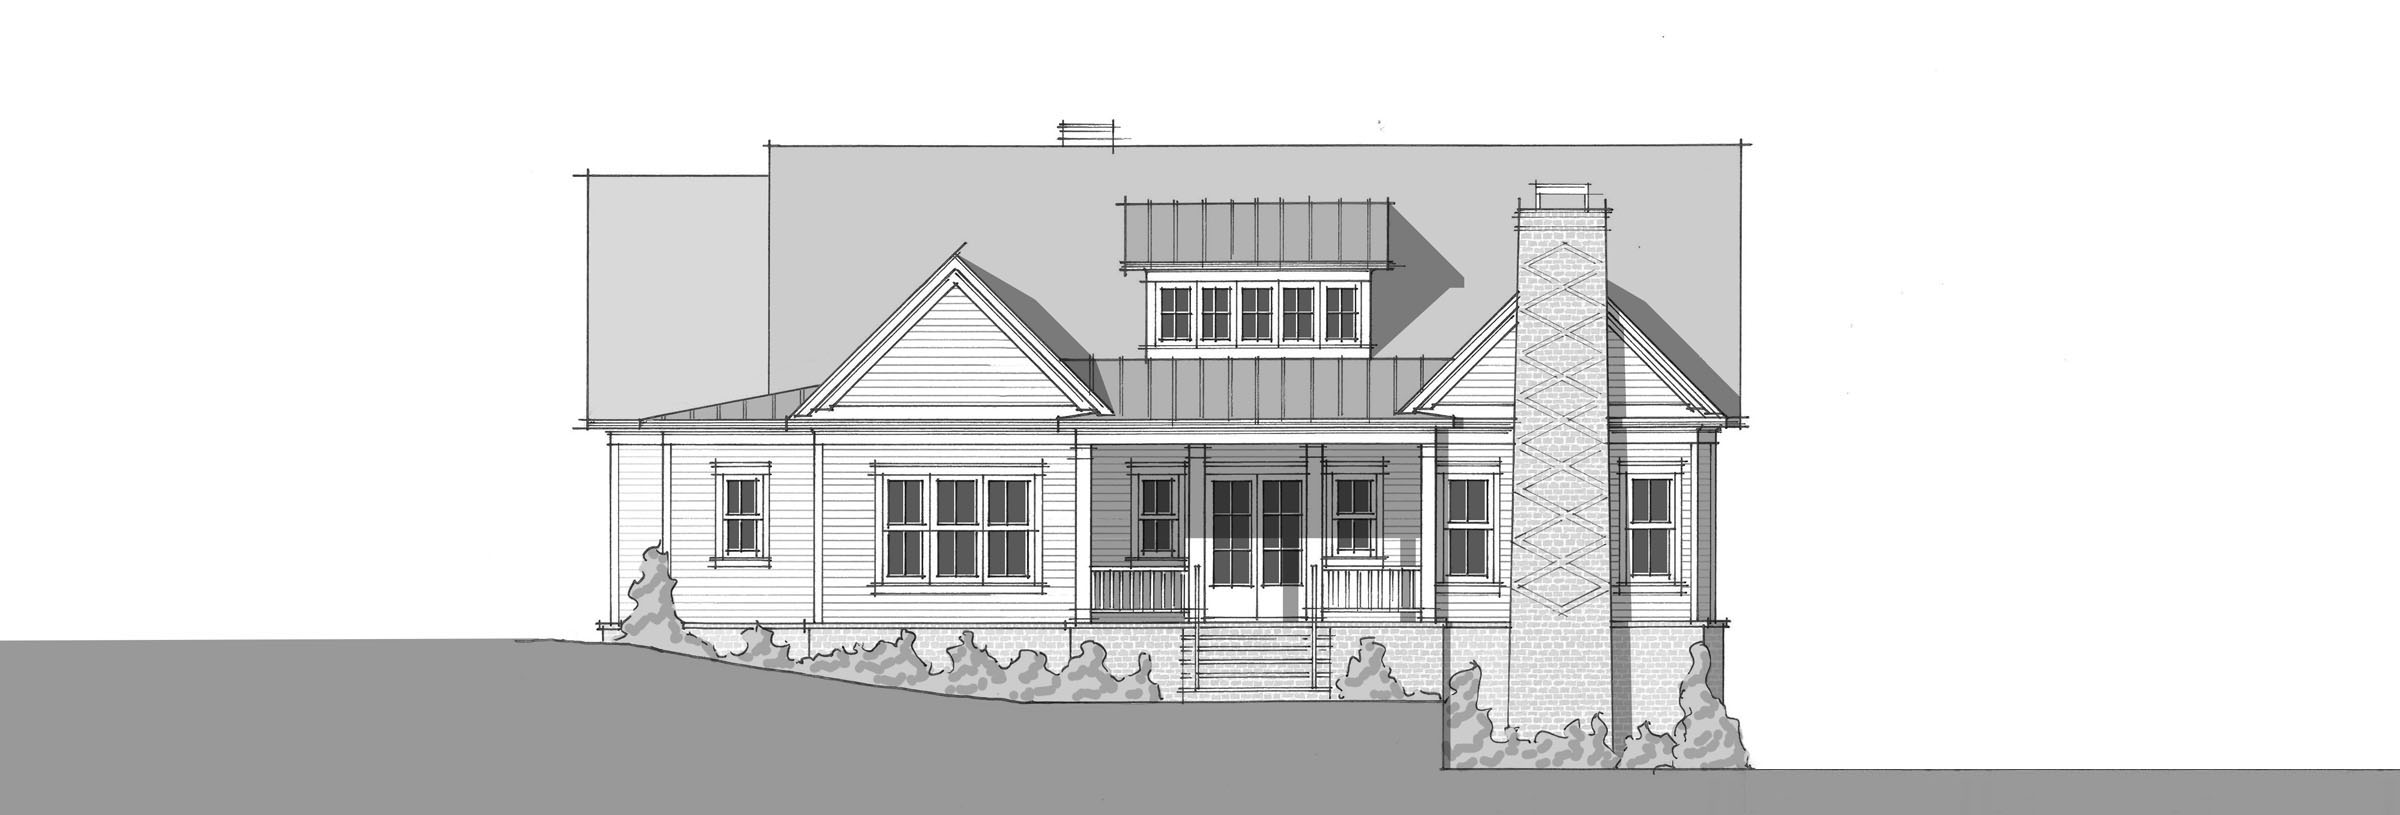 Spring Hollow _front elevation_2400